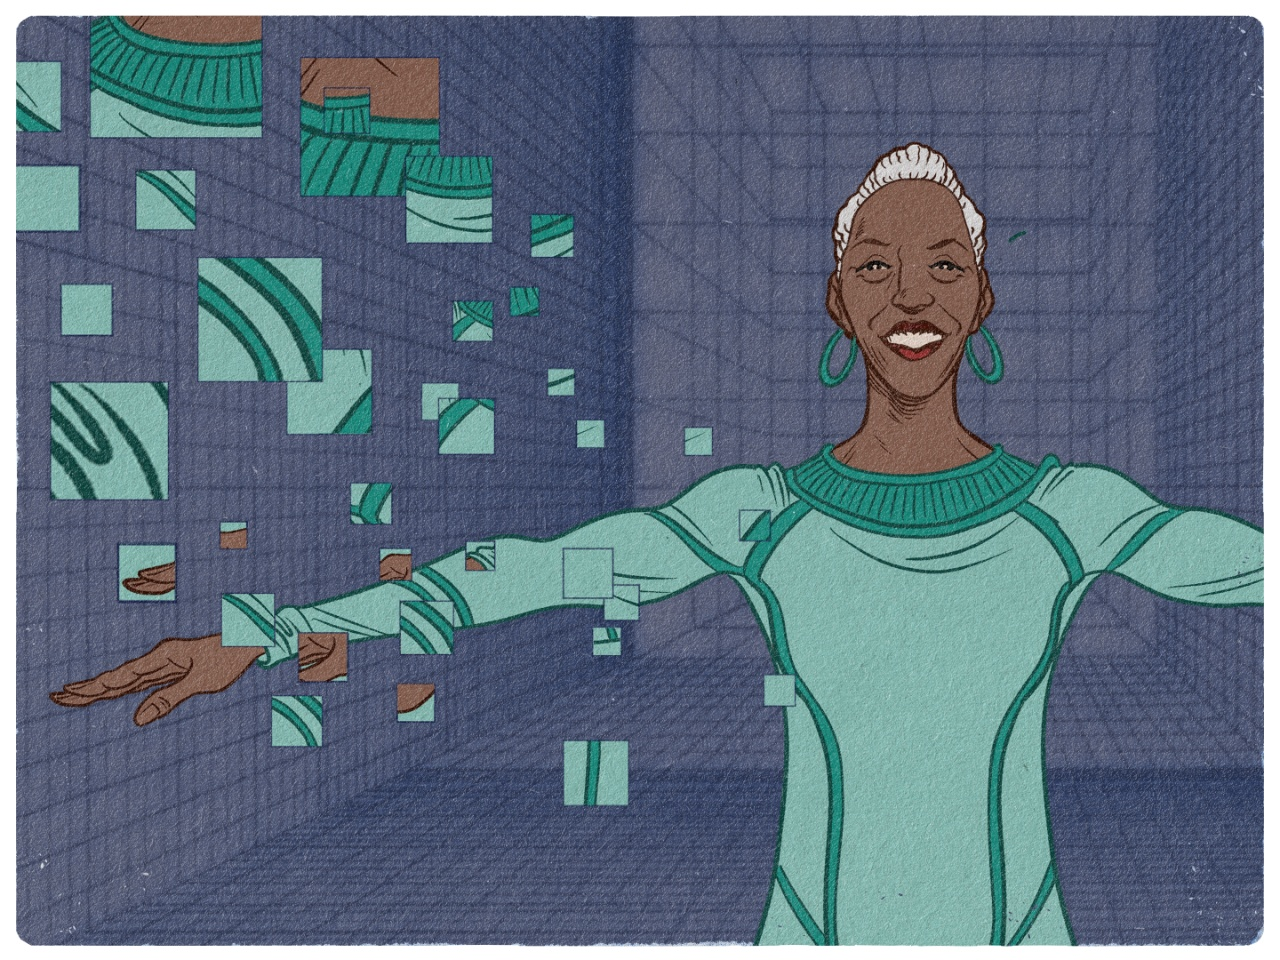 An illustration of a woman in a futuristic setting with her arms stretched out